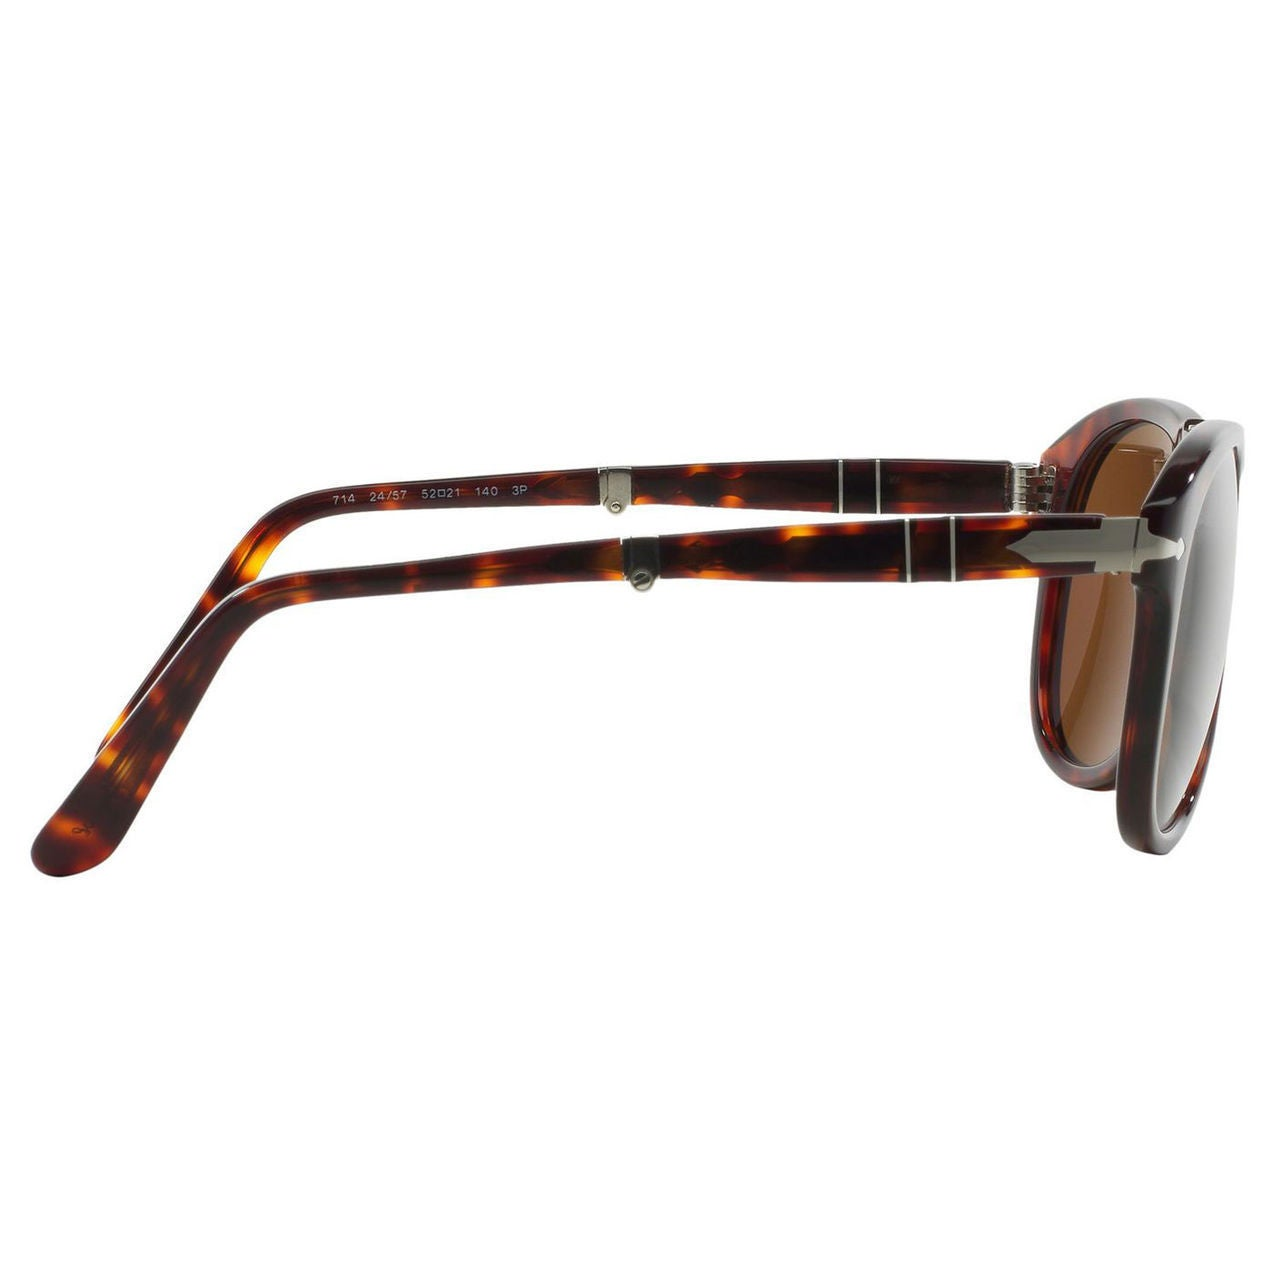 e11d76d41e6ea Shop Persol Men s Steve McQueen 24 57 Havana Foldable Plastic Polarized  Sunglasses - Free Shipping Today - Overstock - 6771882